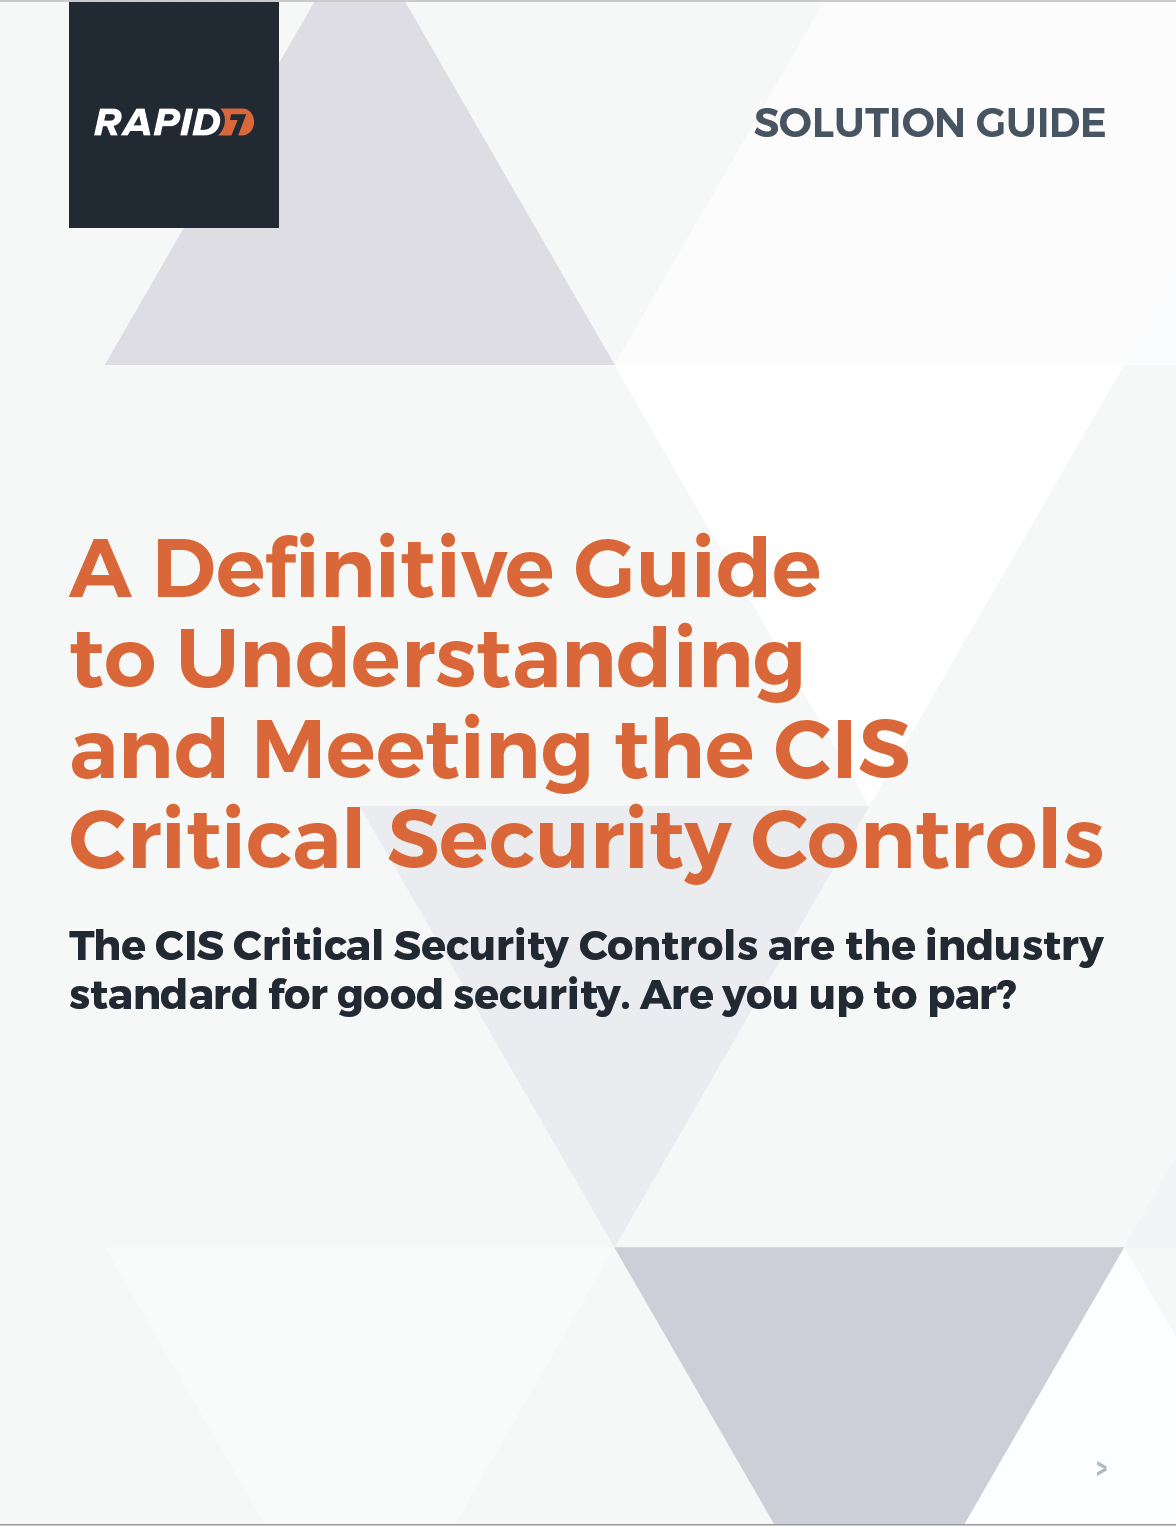 A Definitive Guide to Understanding and Meeting the CIS Critical Security Controls